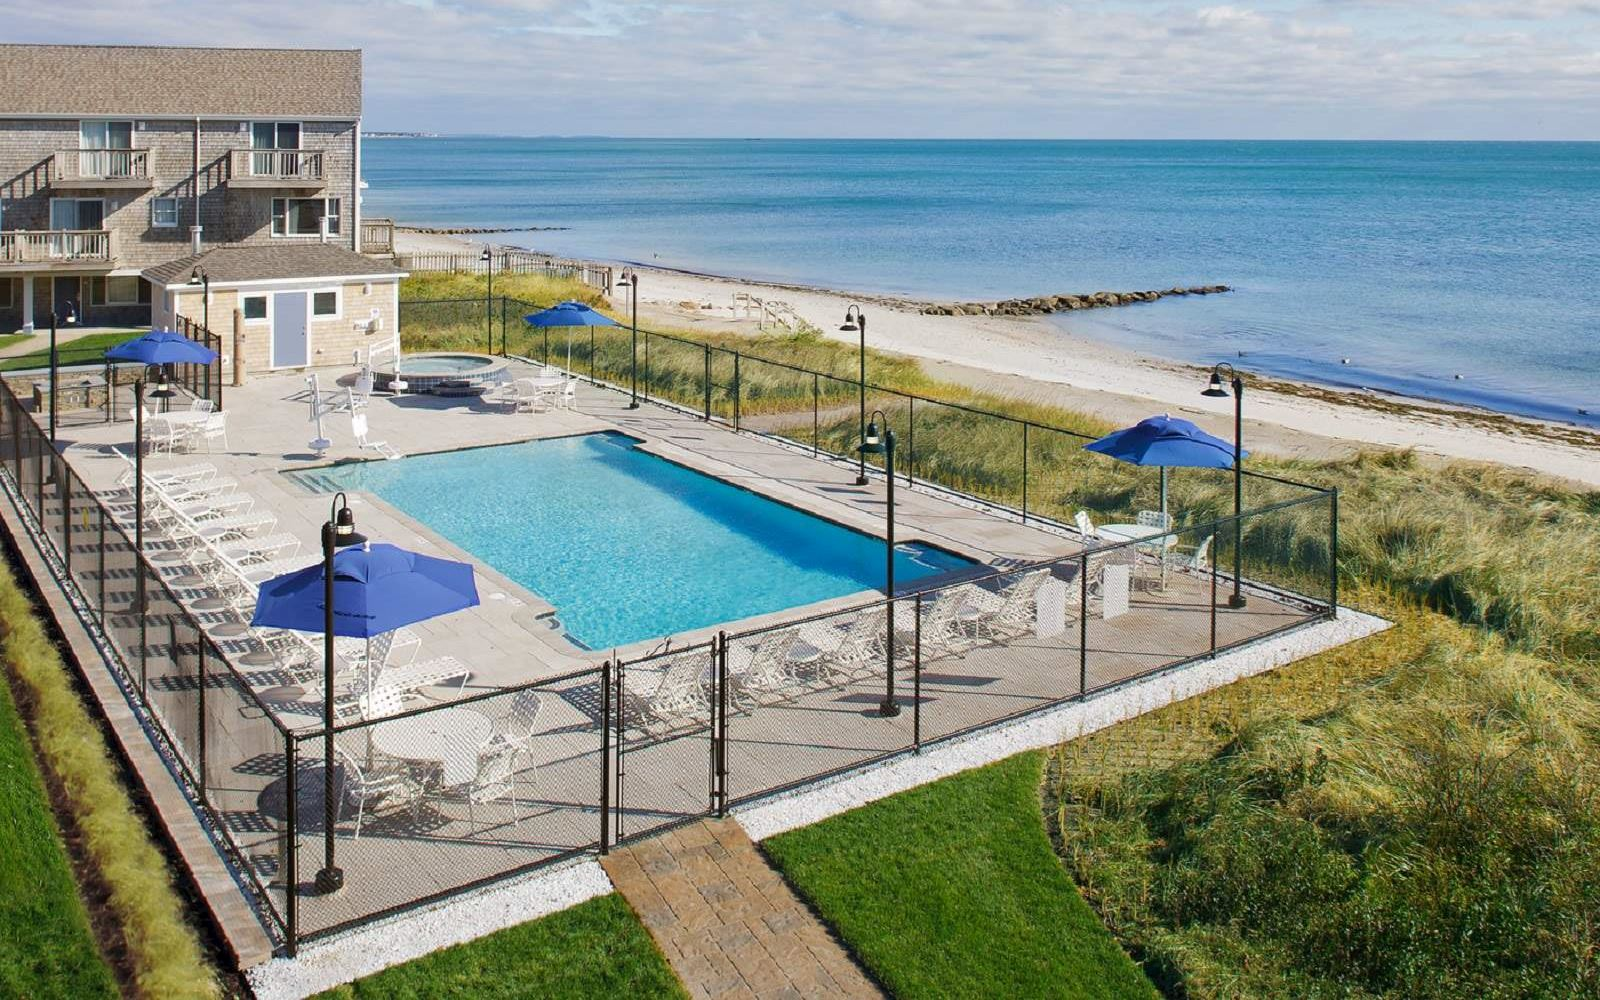 Cape Cod Hotels >> Cape Cod Hotel With Pools Ocean Mist Beach Hotel Suites